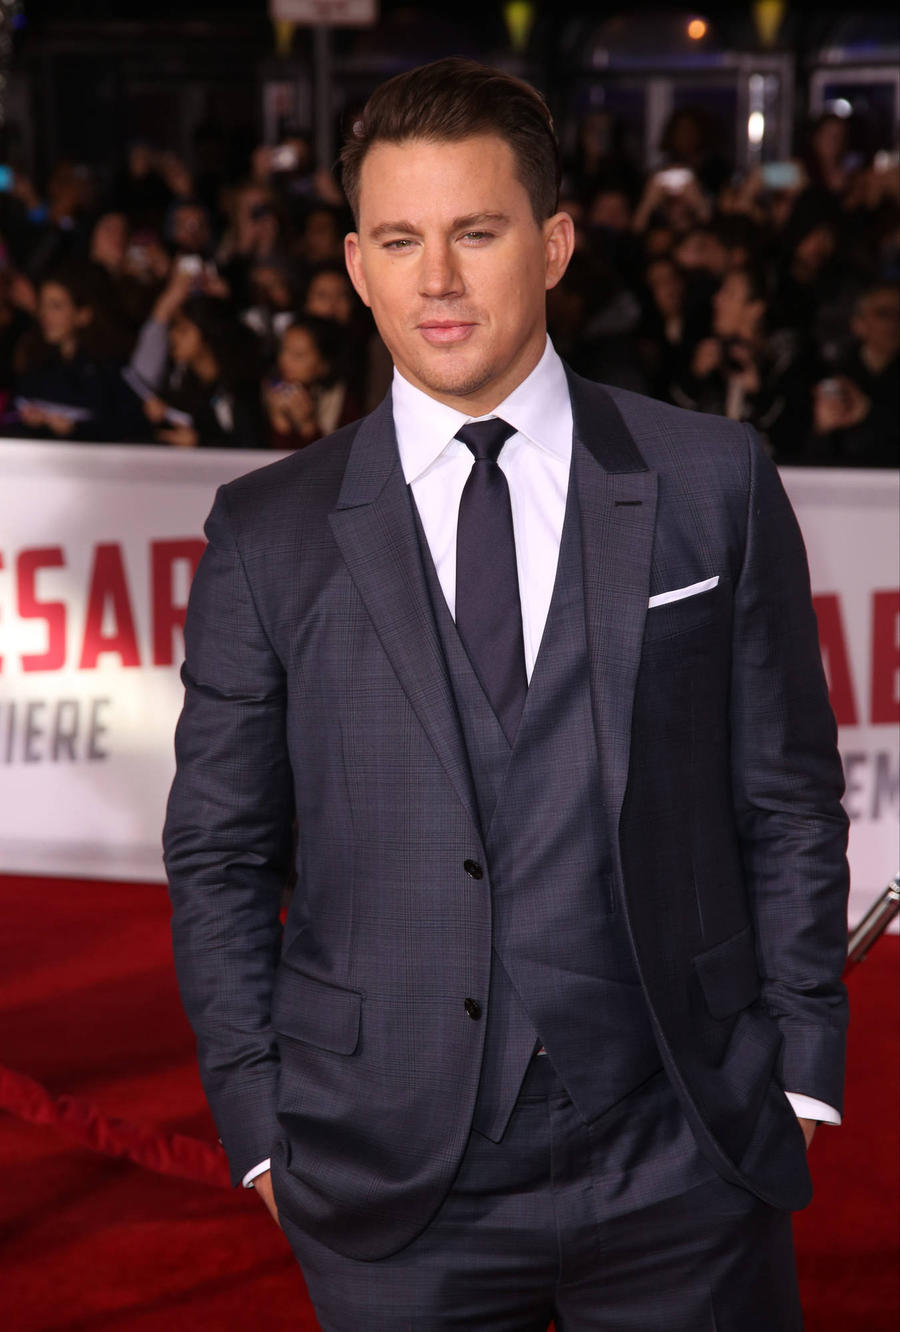 Channing Tatum Unveils New Vodka Venture